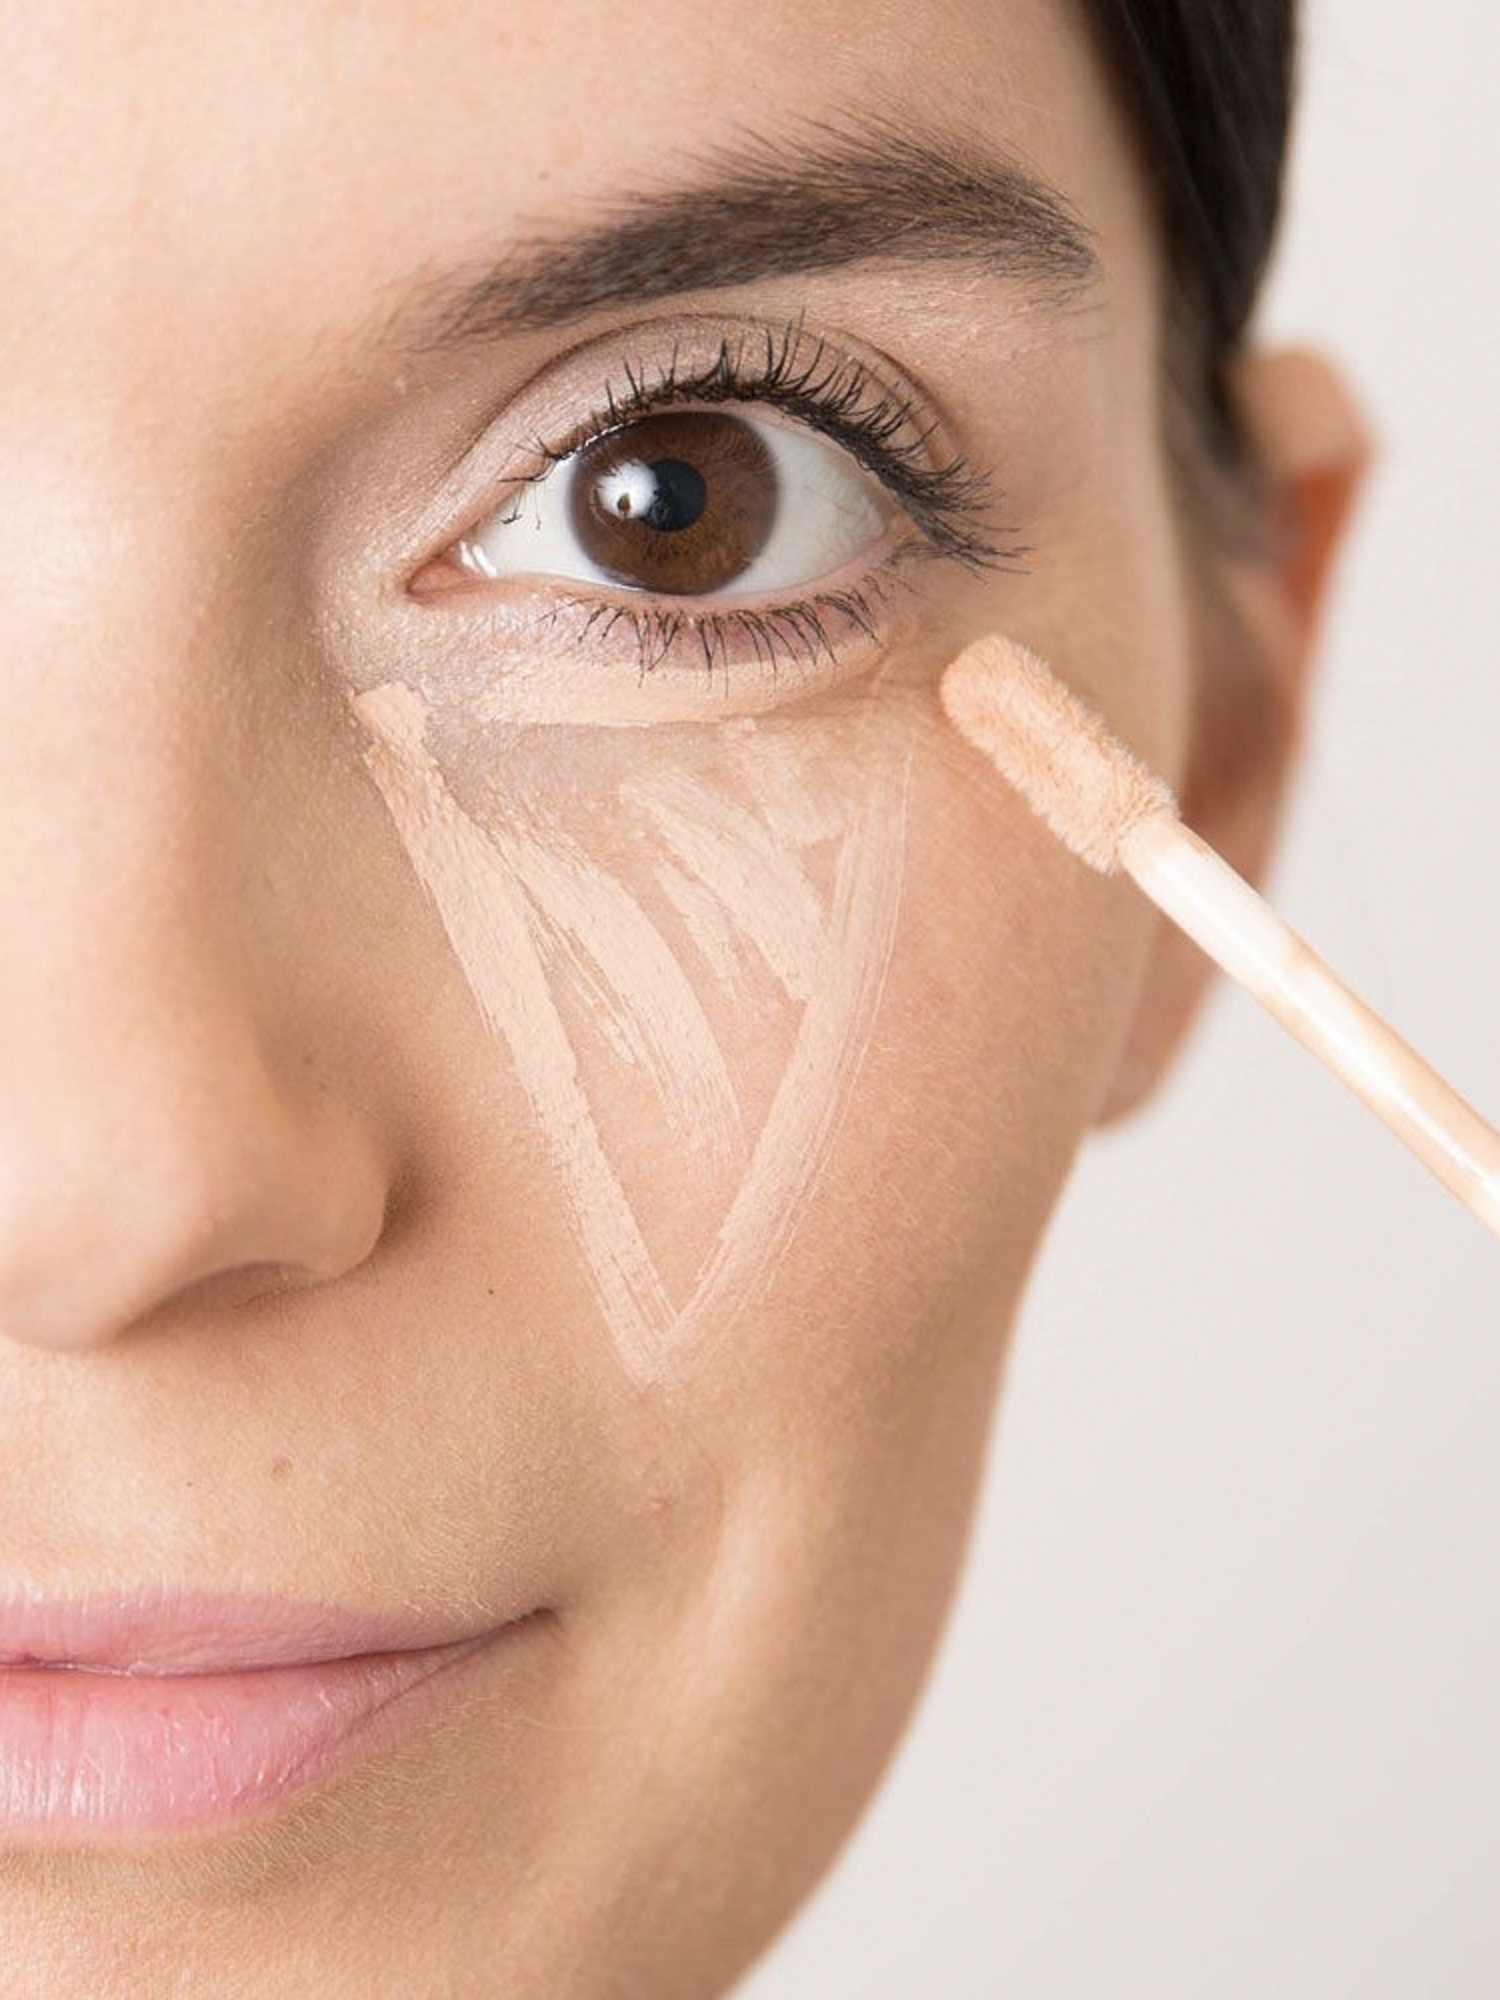 How to Apply Concealer to Fake a Good Nights Sleep